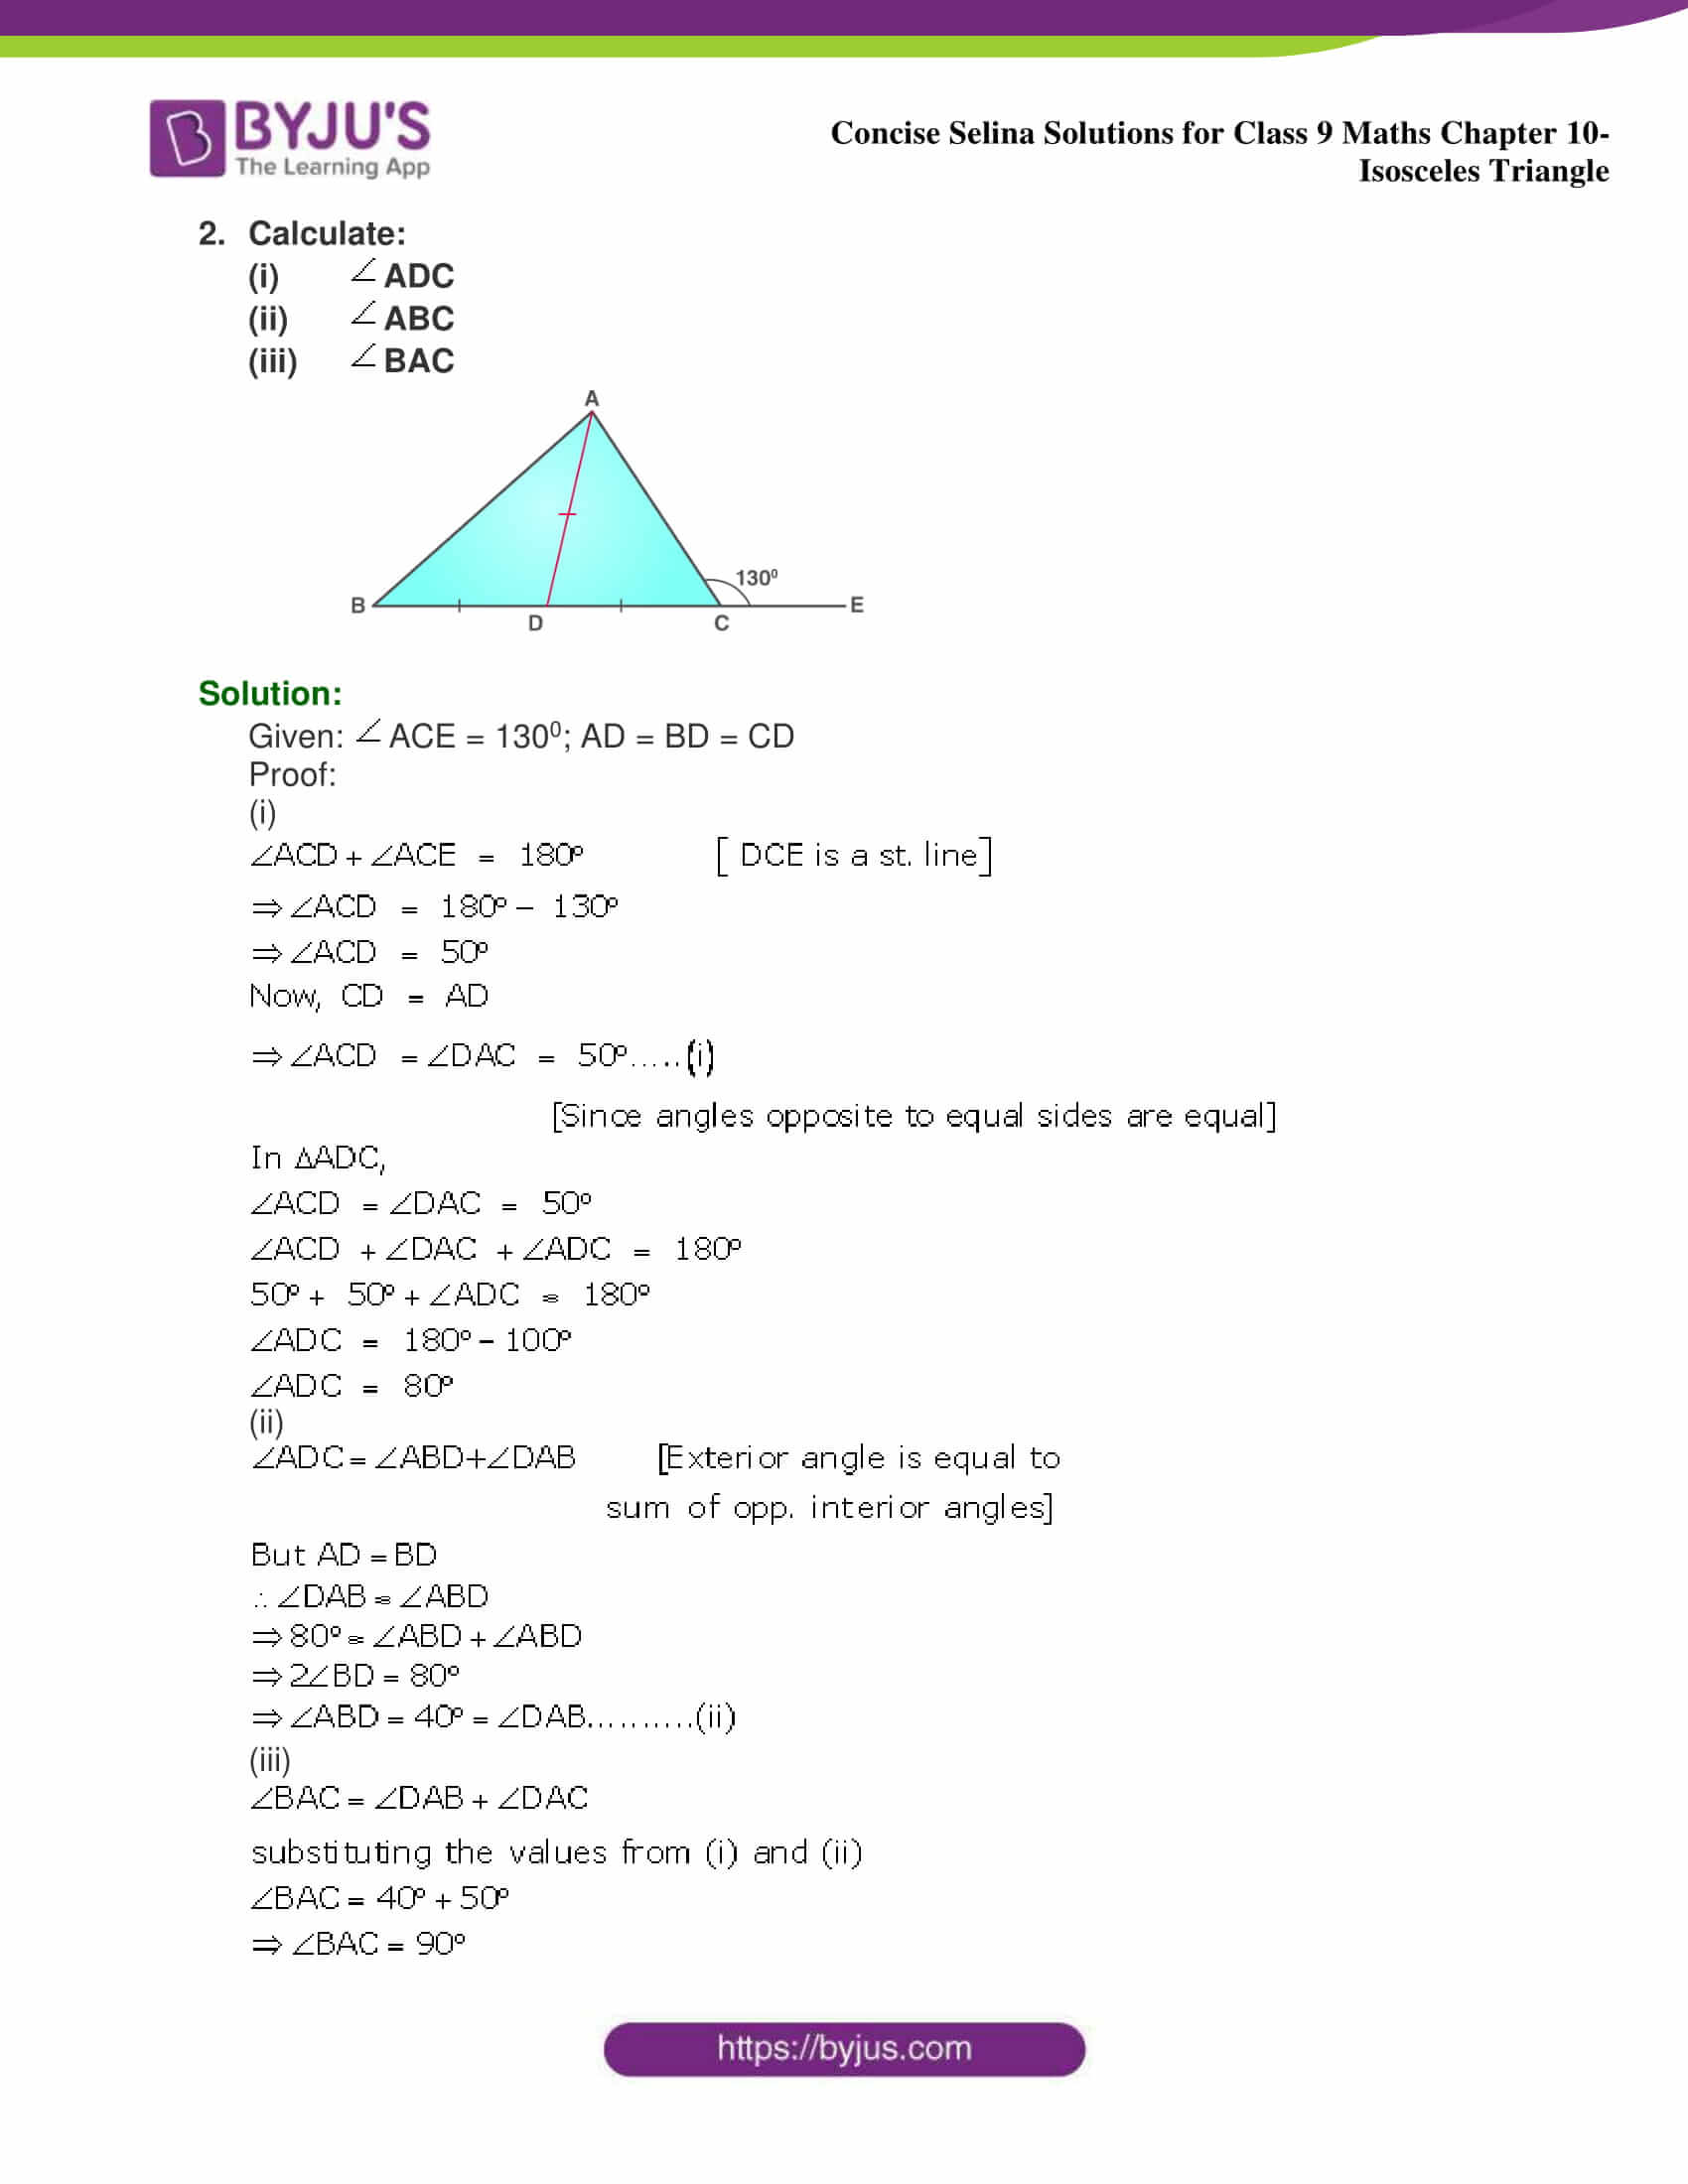 selina Solutions for Class 9 Maths Chapter 10 part 02